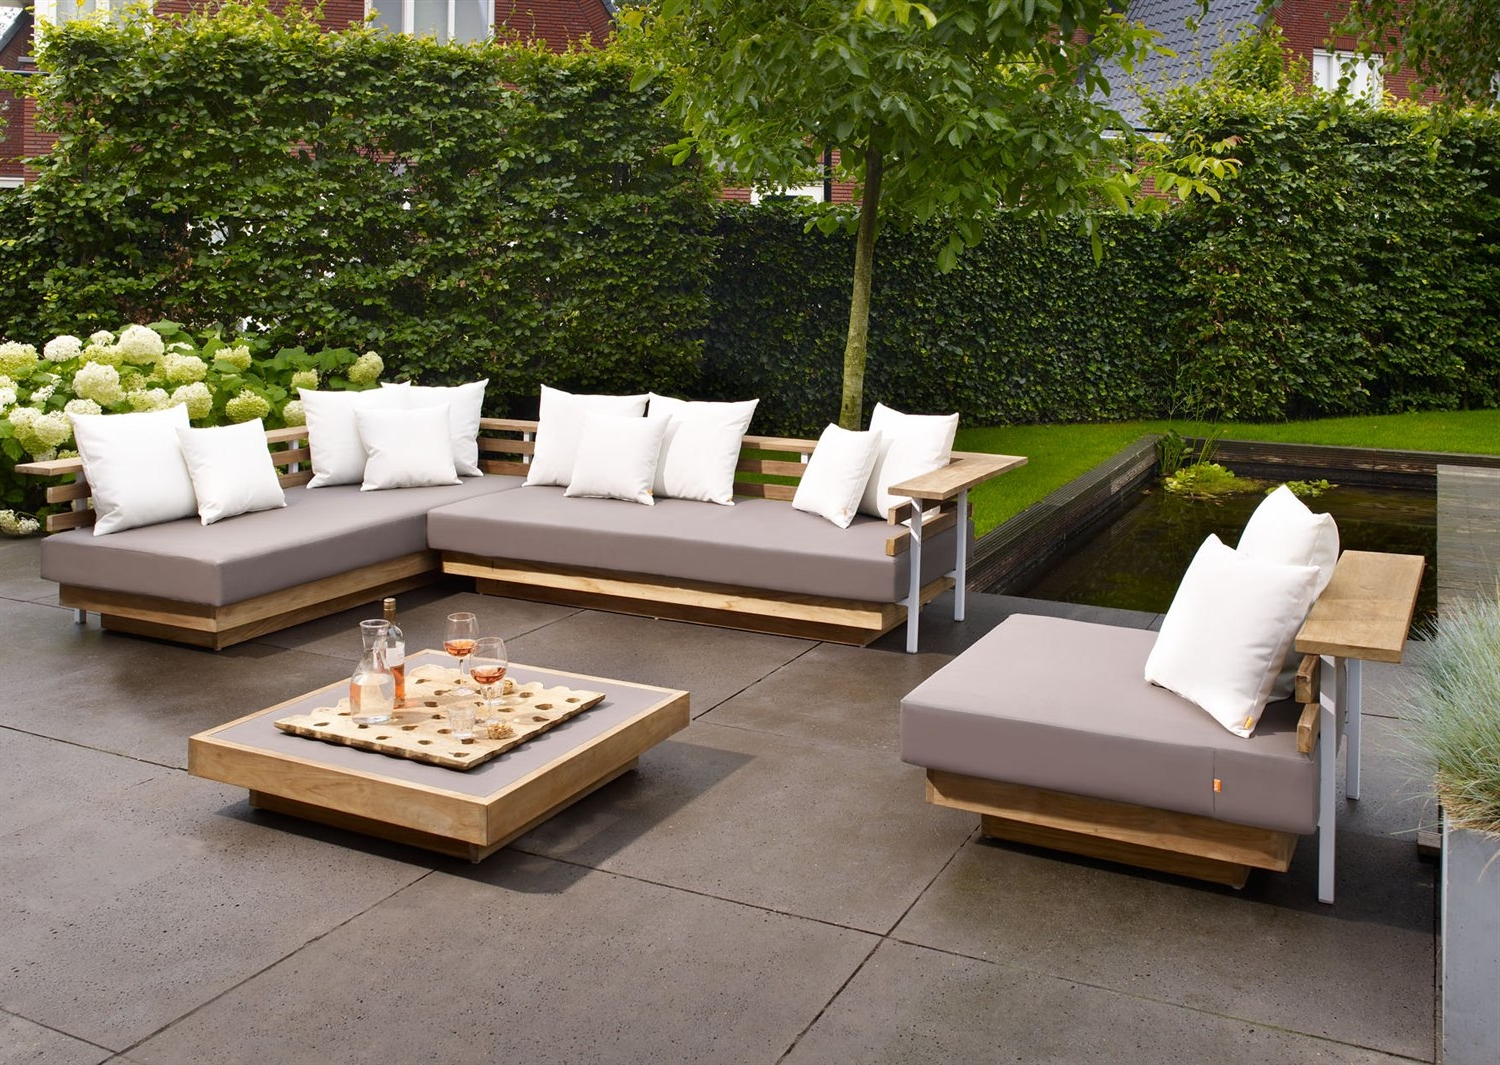 outdoor sofa furniture 3 seater recliner leather lounge settings